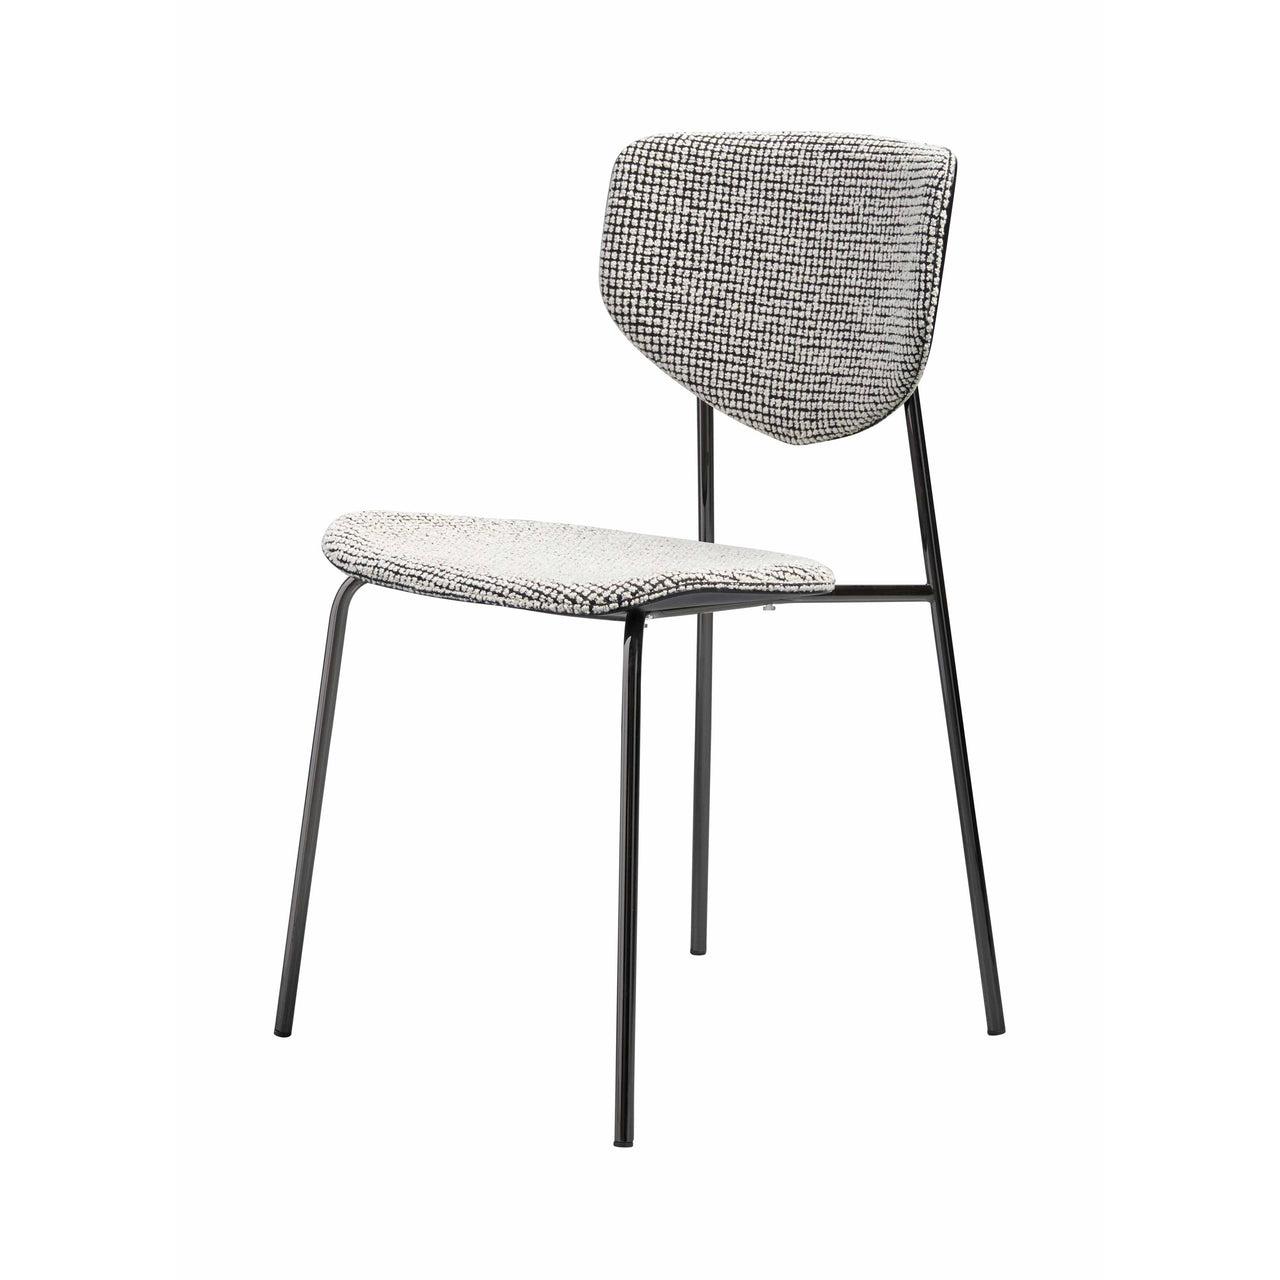 Caristo Chair: Upholstered